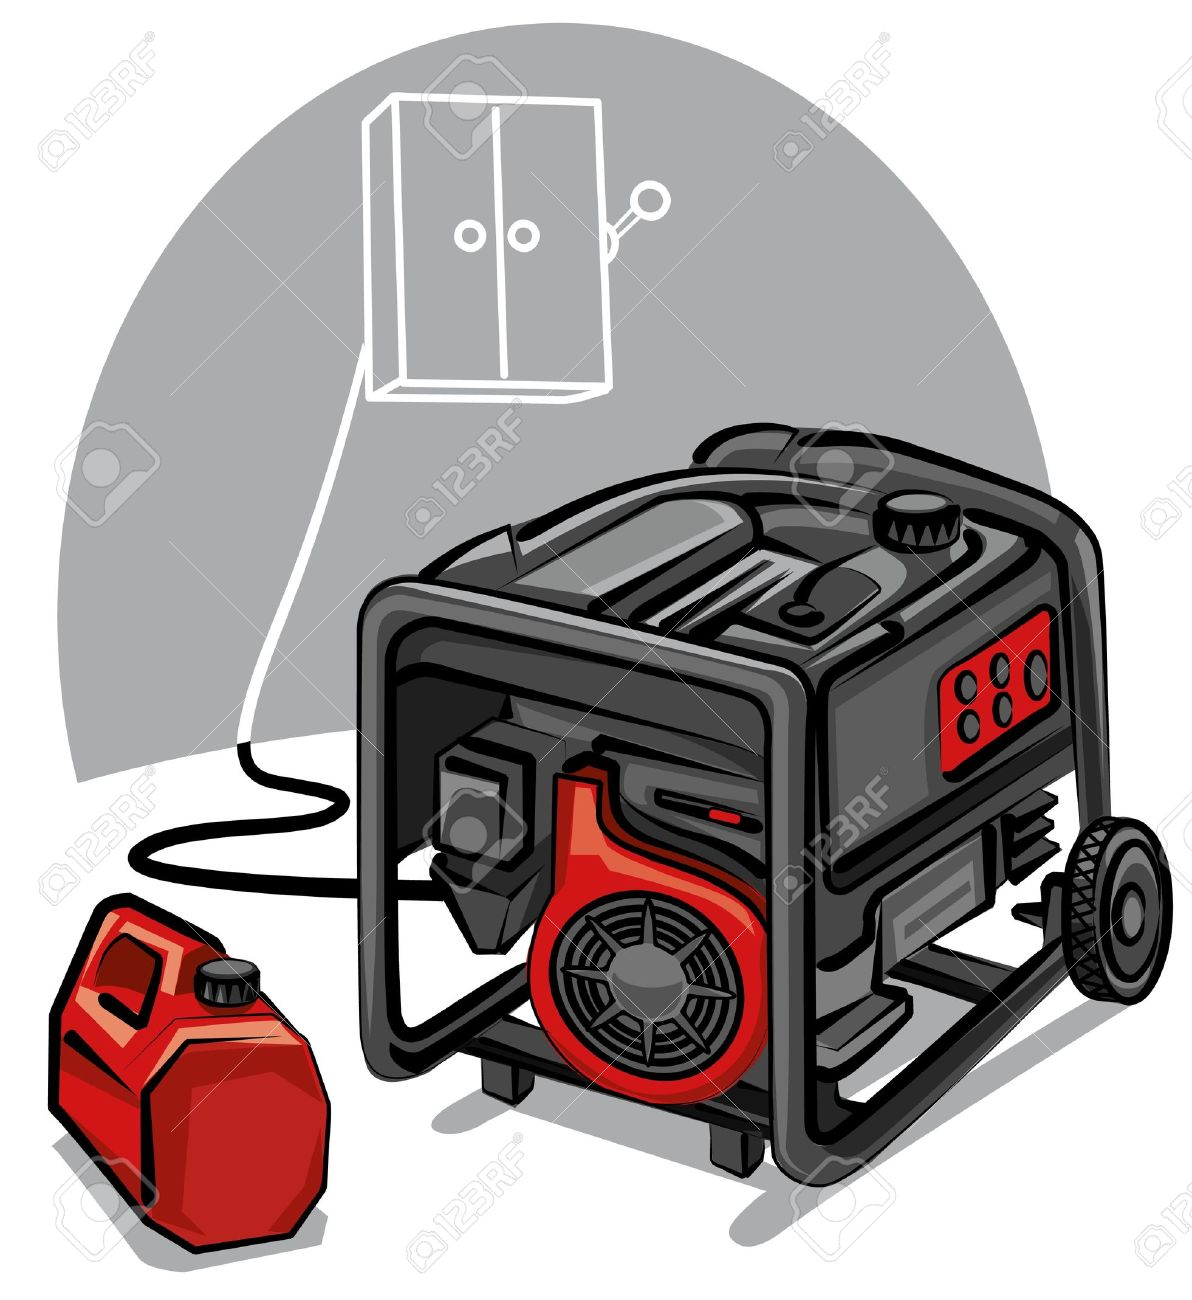 Generator clipart image library library 10+ Clip Art Generator   ClipartLook image library library